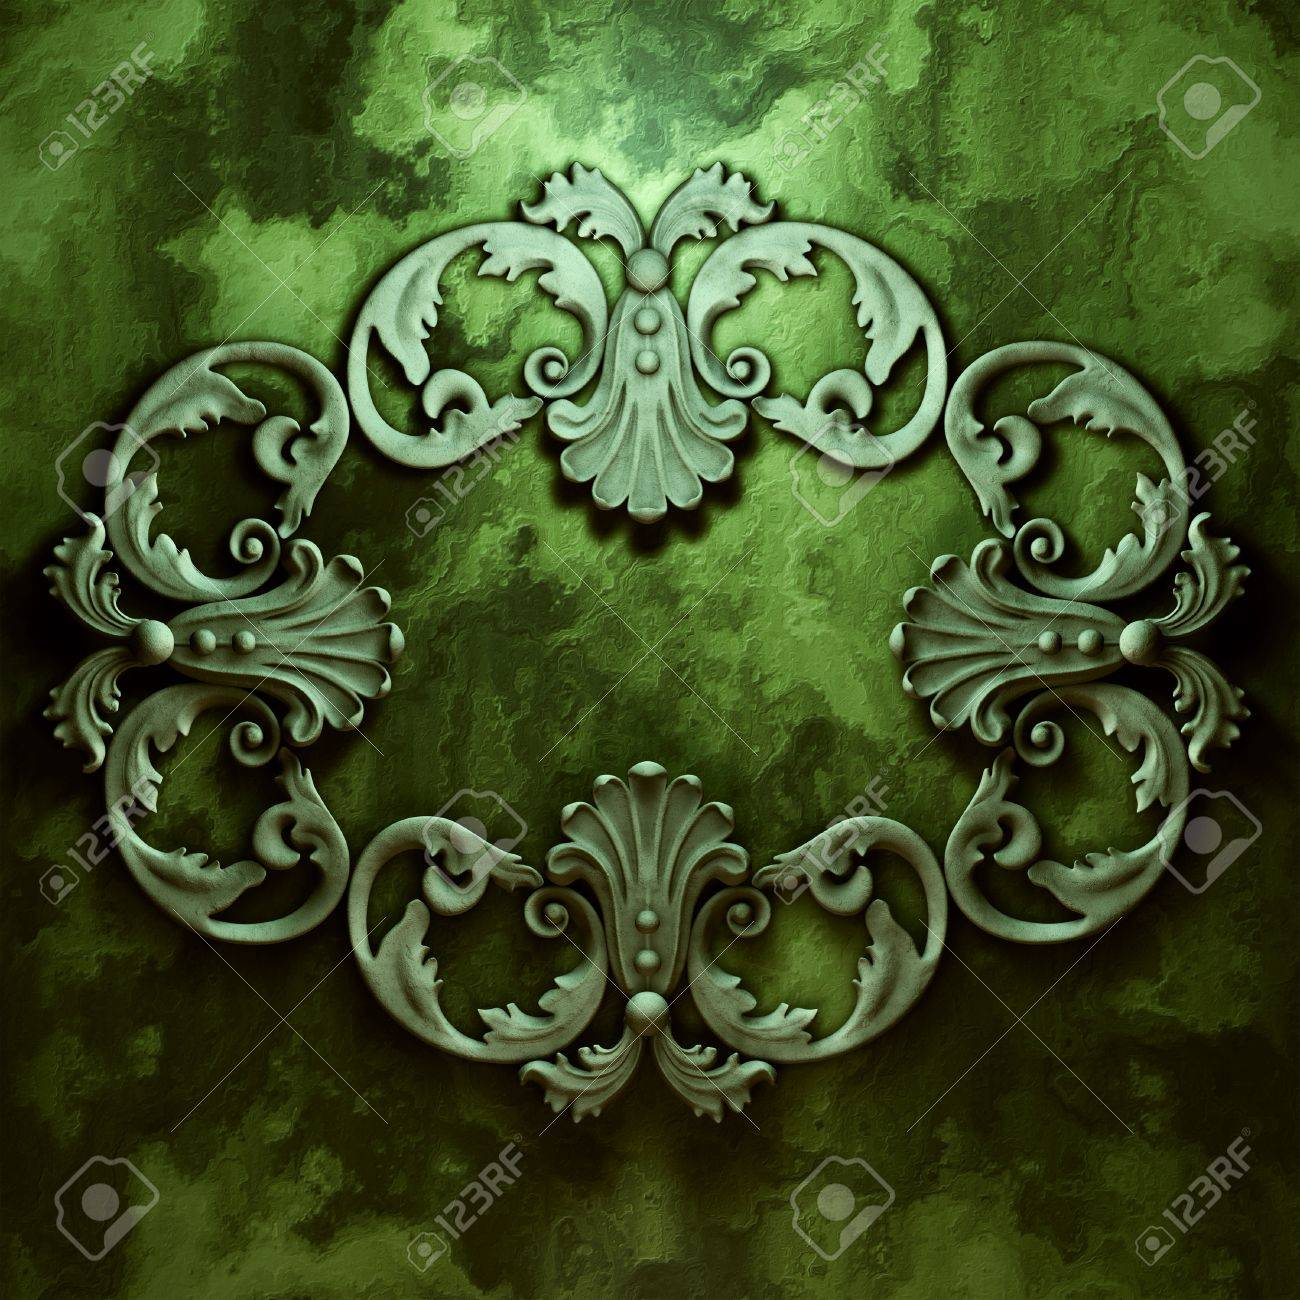 3d ceramic ornament, the sculptural form on a wall Stock Photo - 9141086